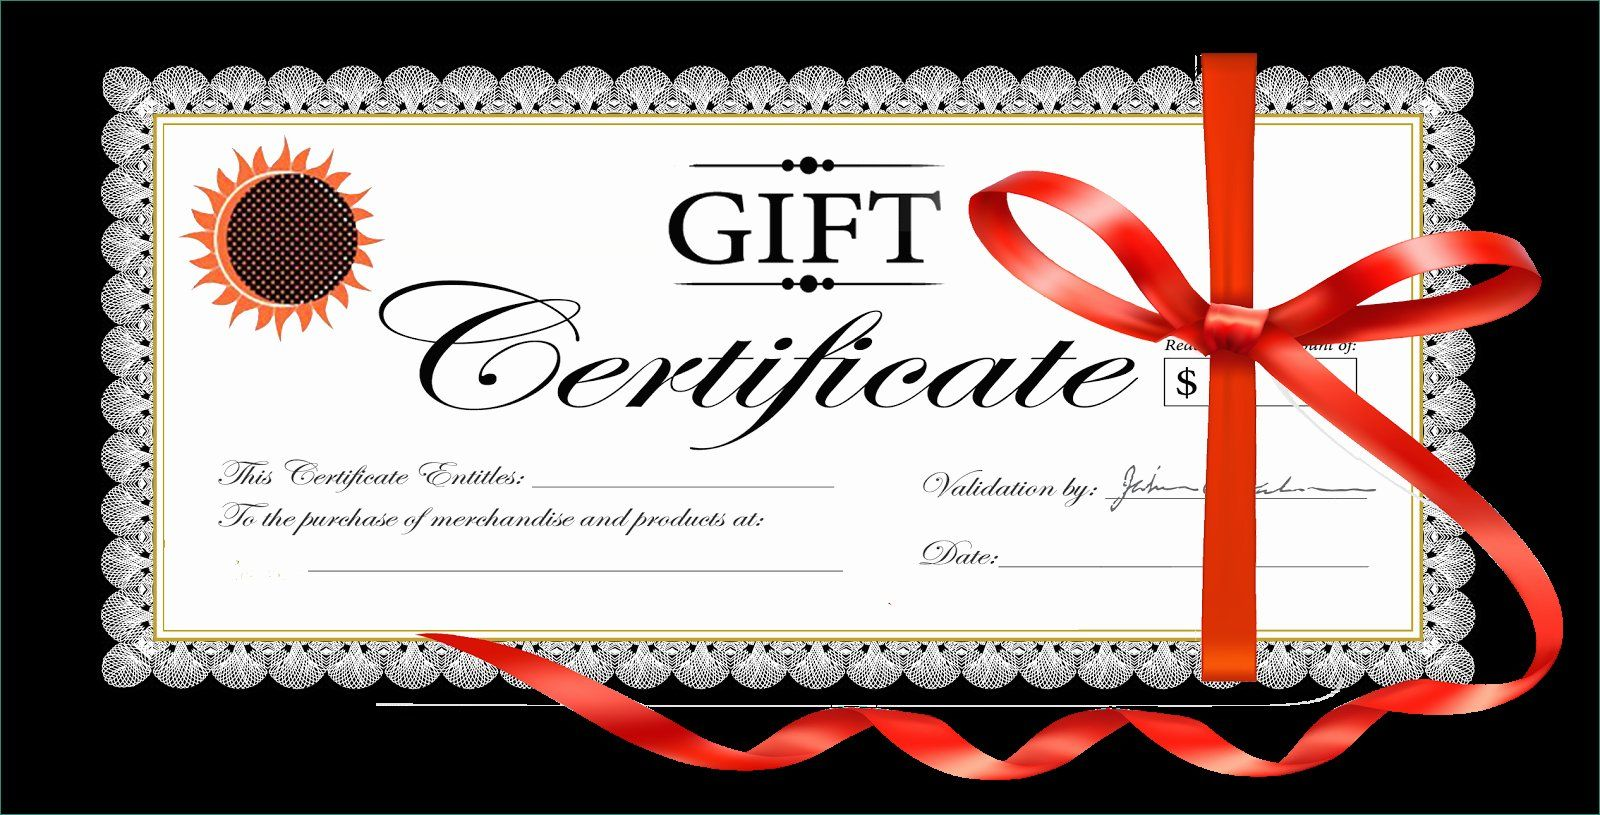 18 Gift Certificate Templates Excel Pdf Formats Practical Gift Card Template Printable Gift Card Template Gift Certificate Template Word Printable Gift Cards